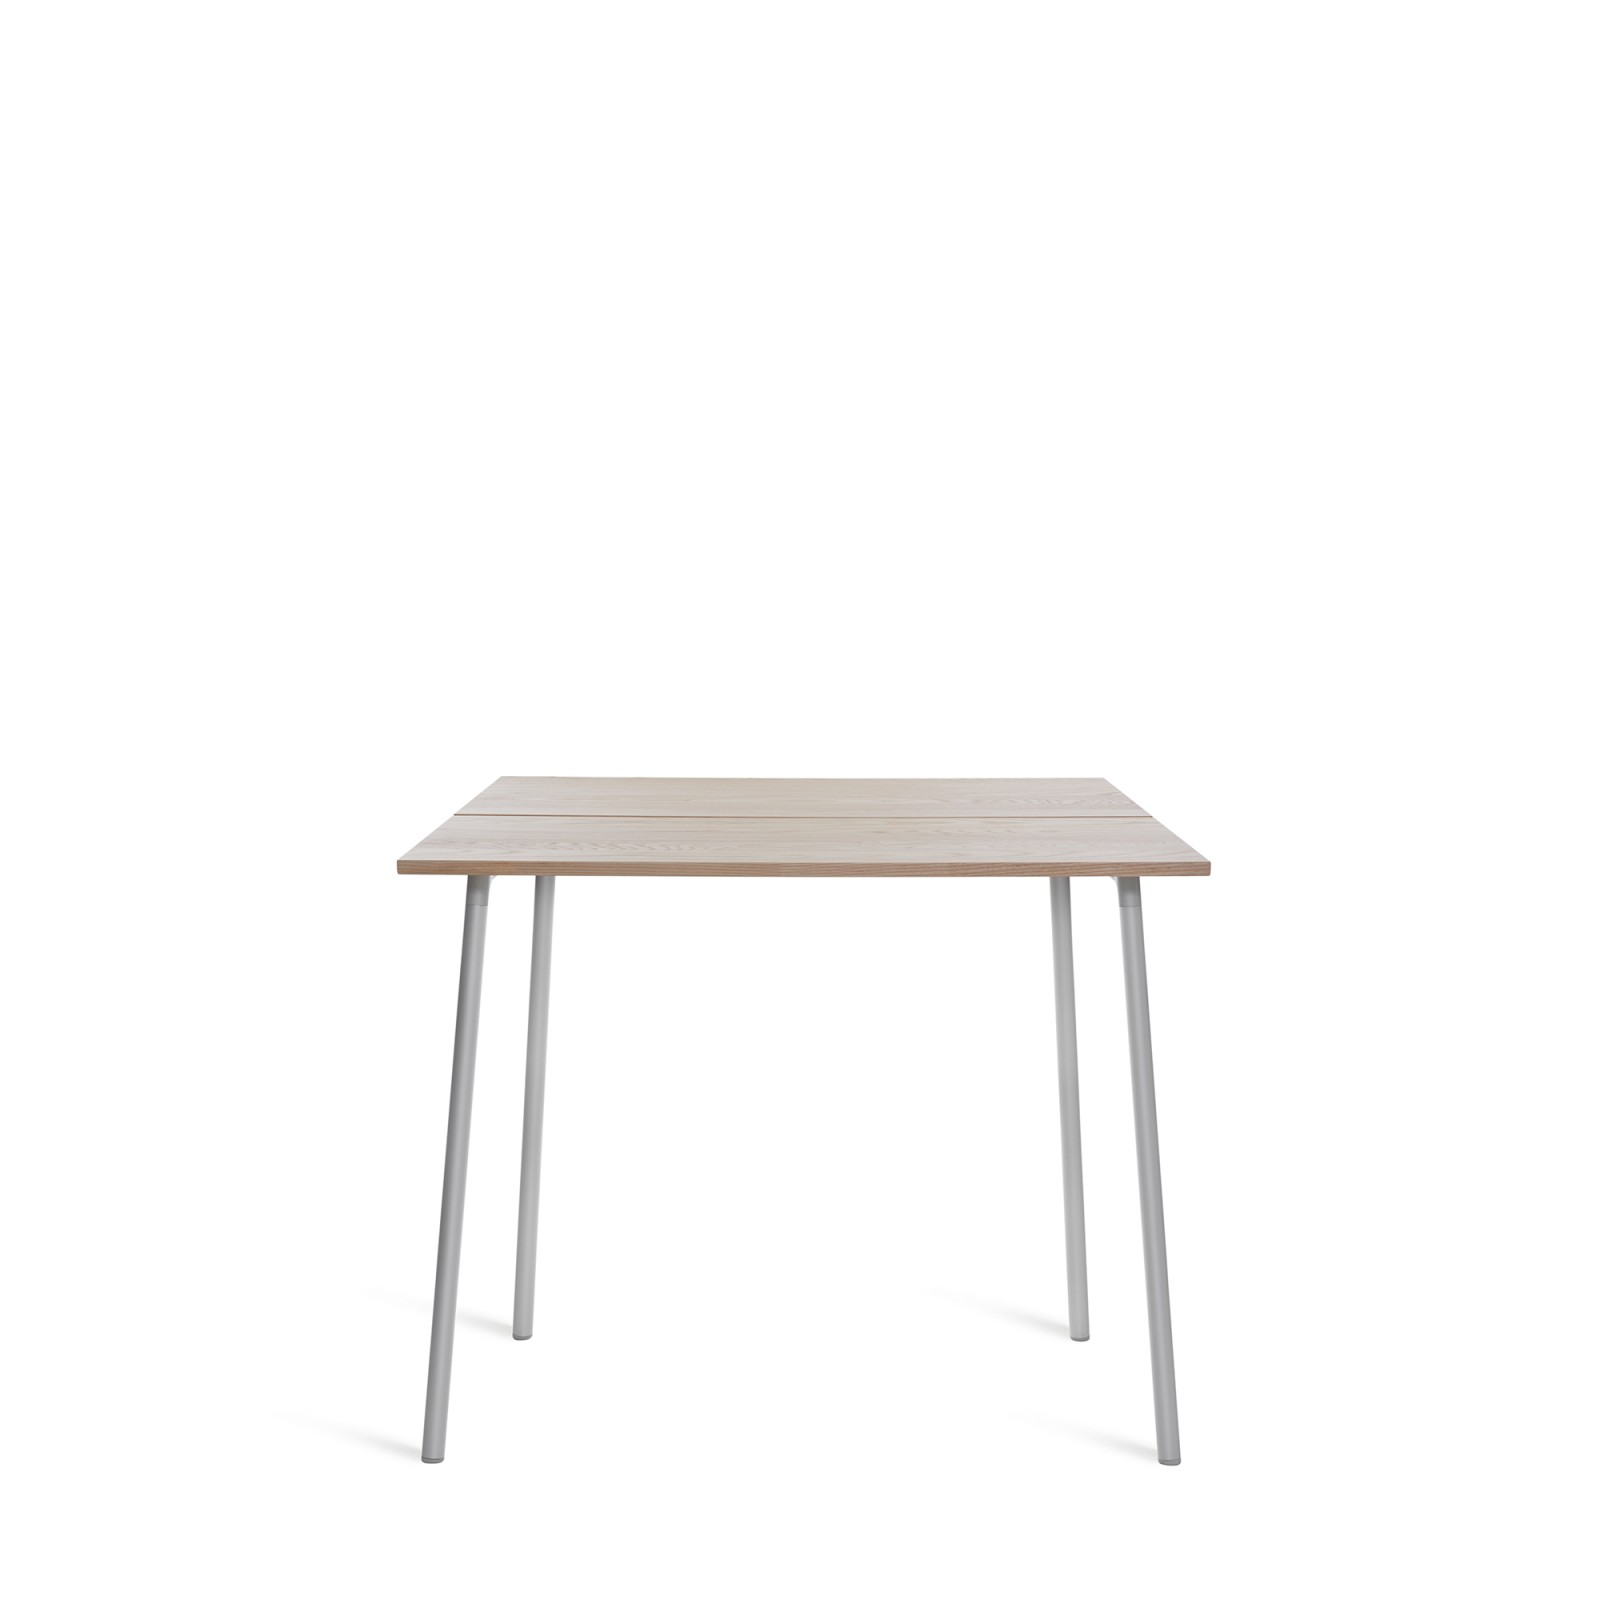 Run High Table Aluminium, Ash, 183cm